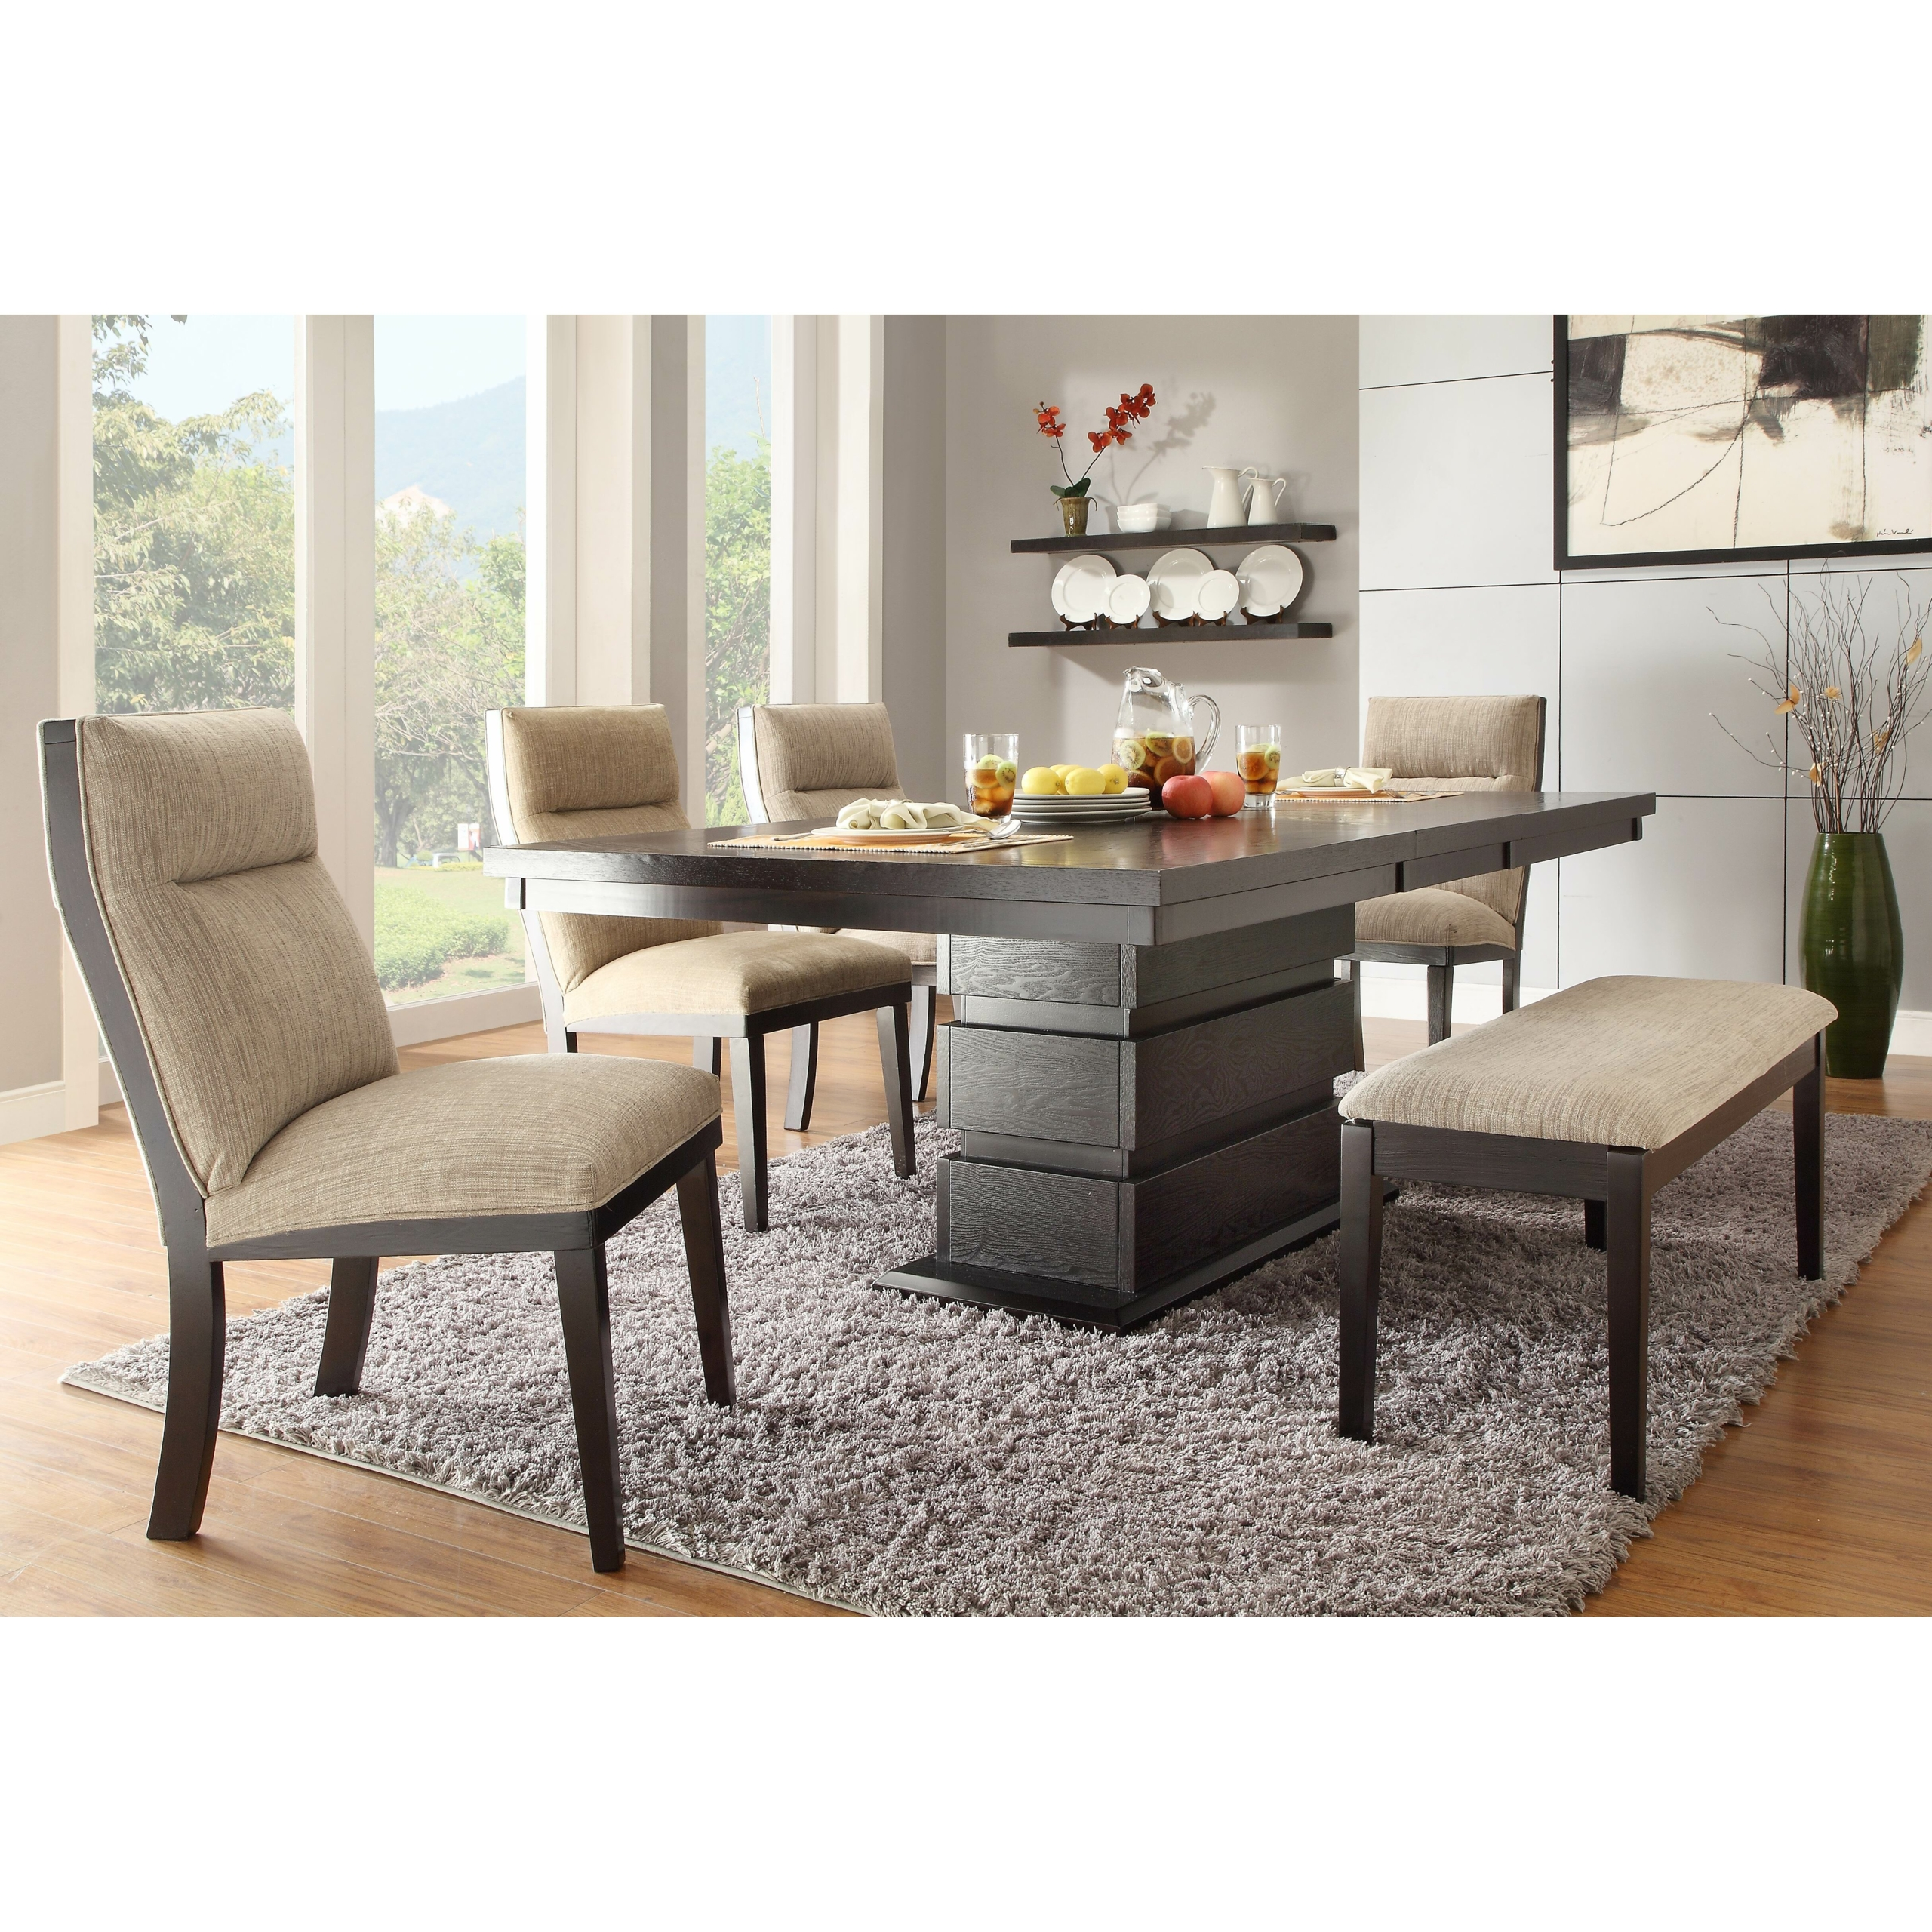 Dining Table: Dining Table Padded Bench